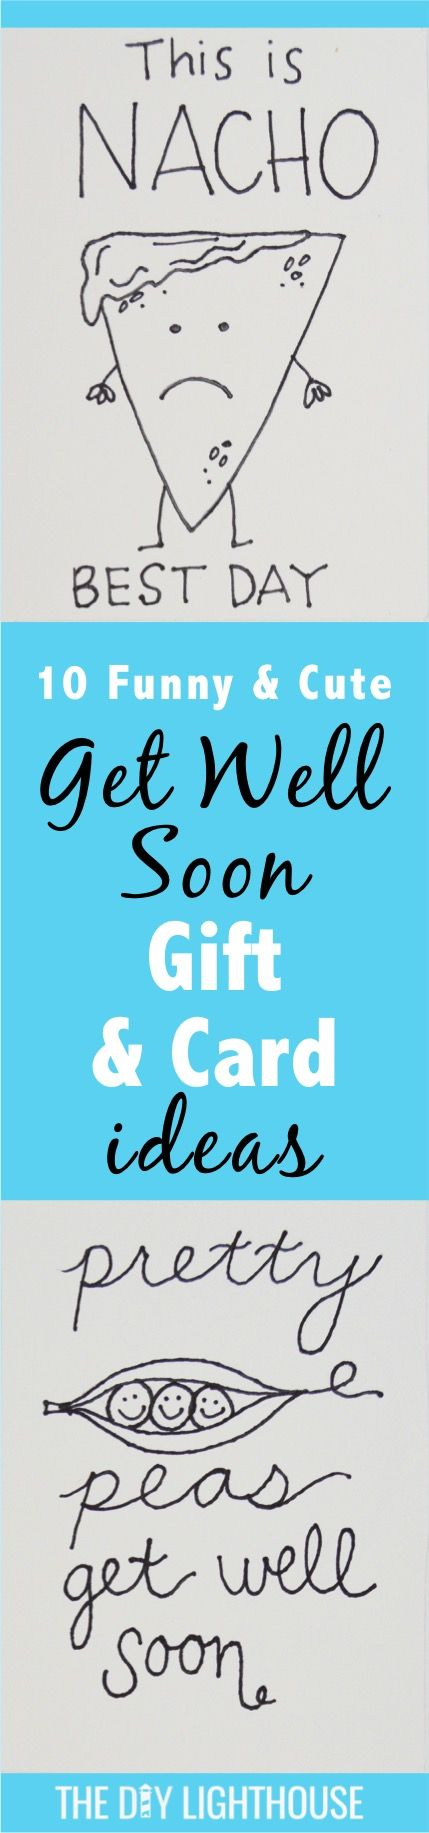 get well soon gift and card ideas | funny and cute DIY craft idea for saying get better | hospital or doctor recovery message to give in a gift basket.